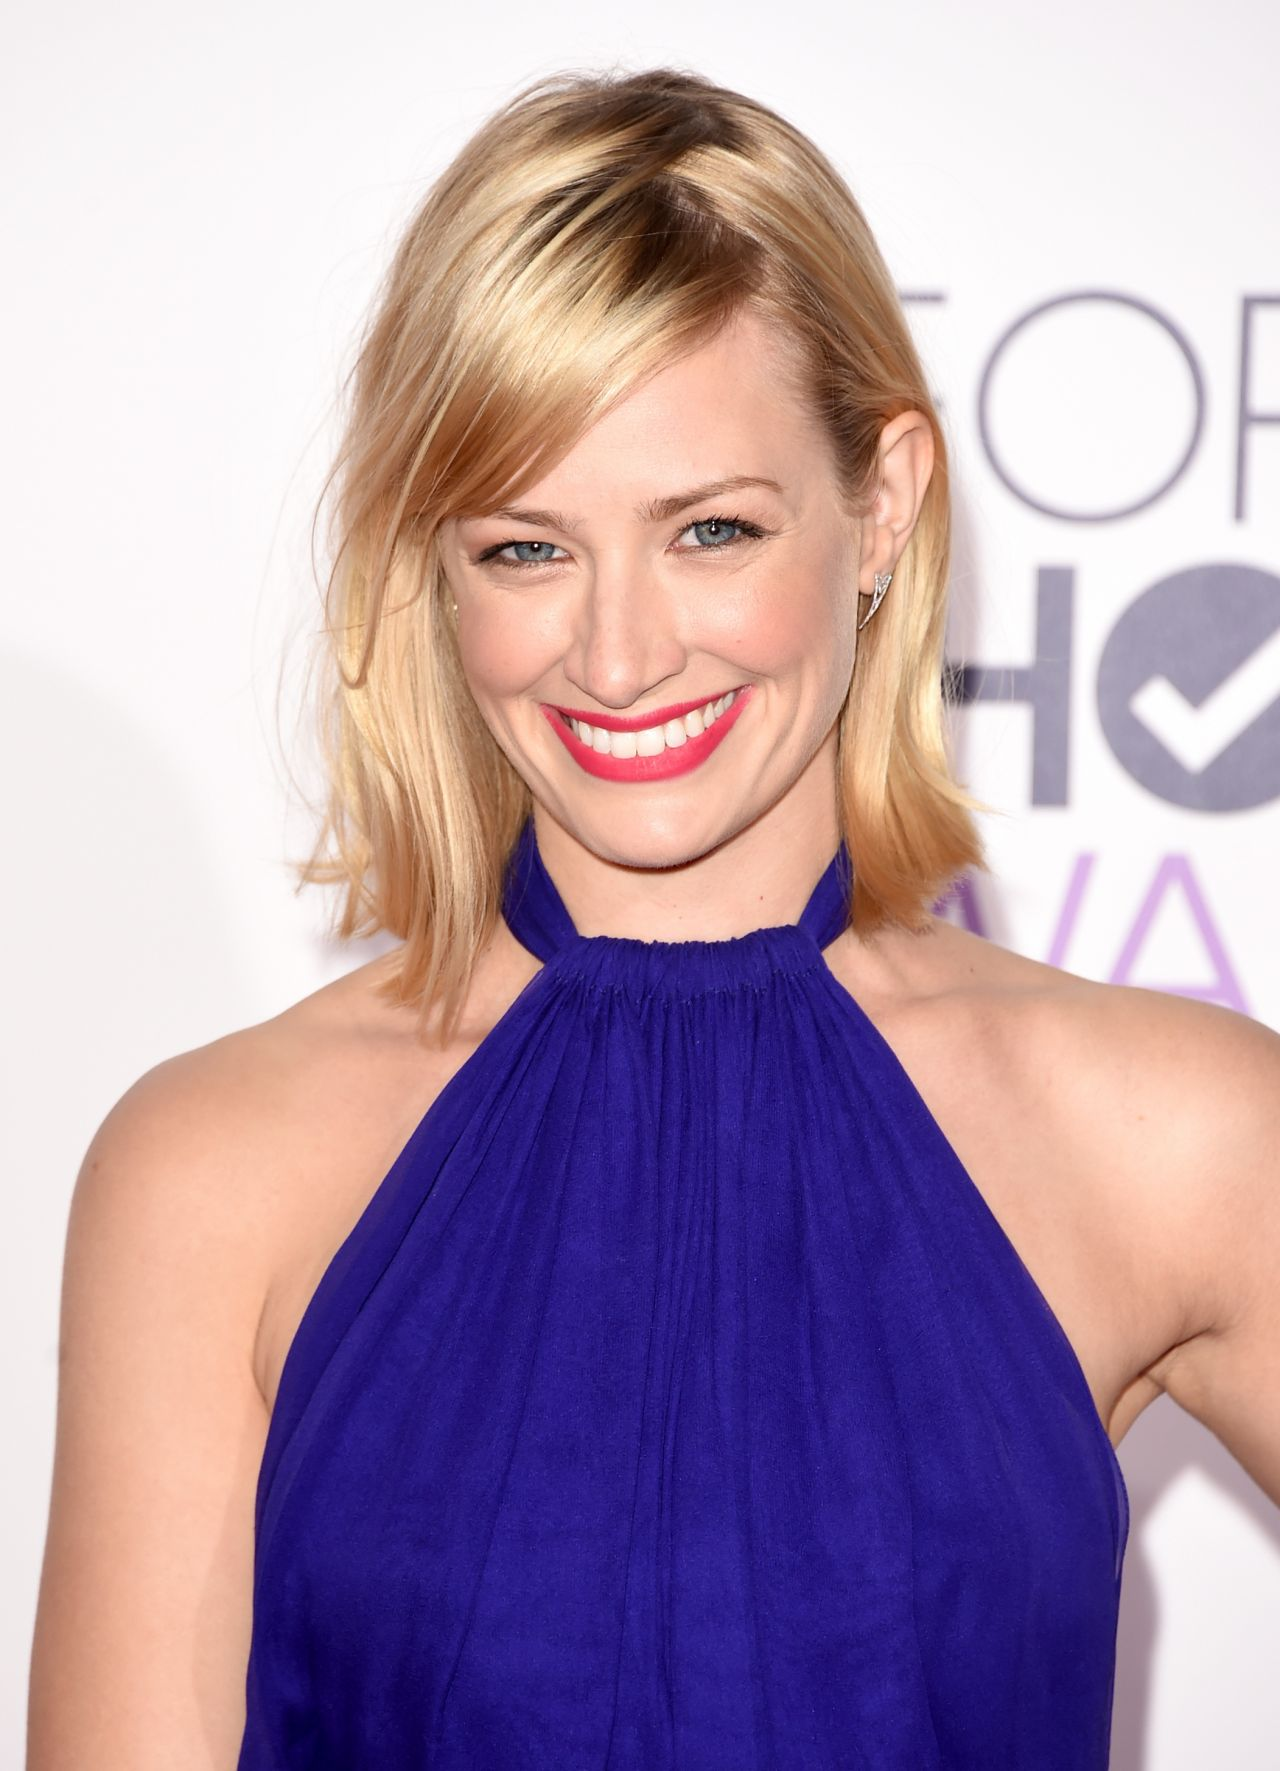 BETH BEHRS: HOW SHE AGED MORE THAN 10 YEARS IN JUST FOUR